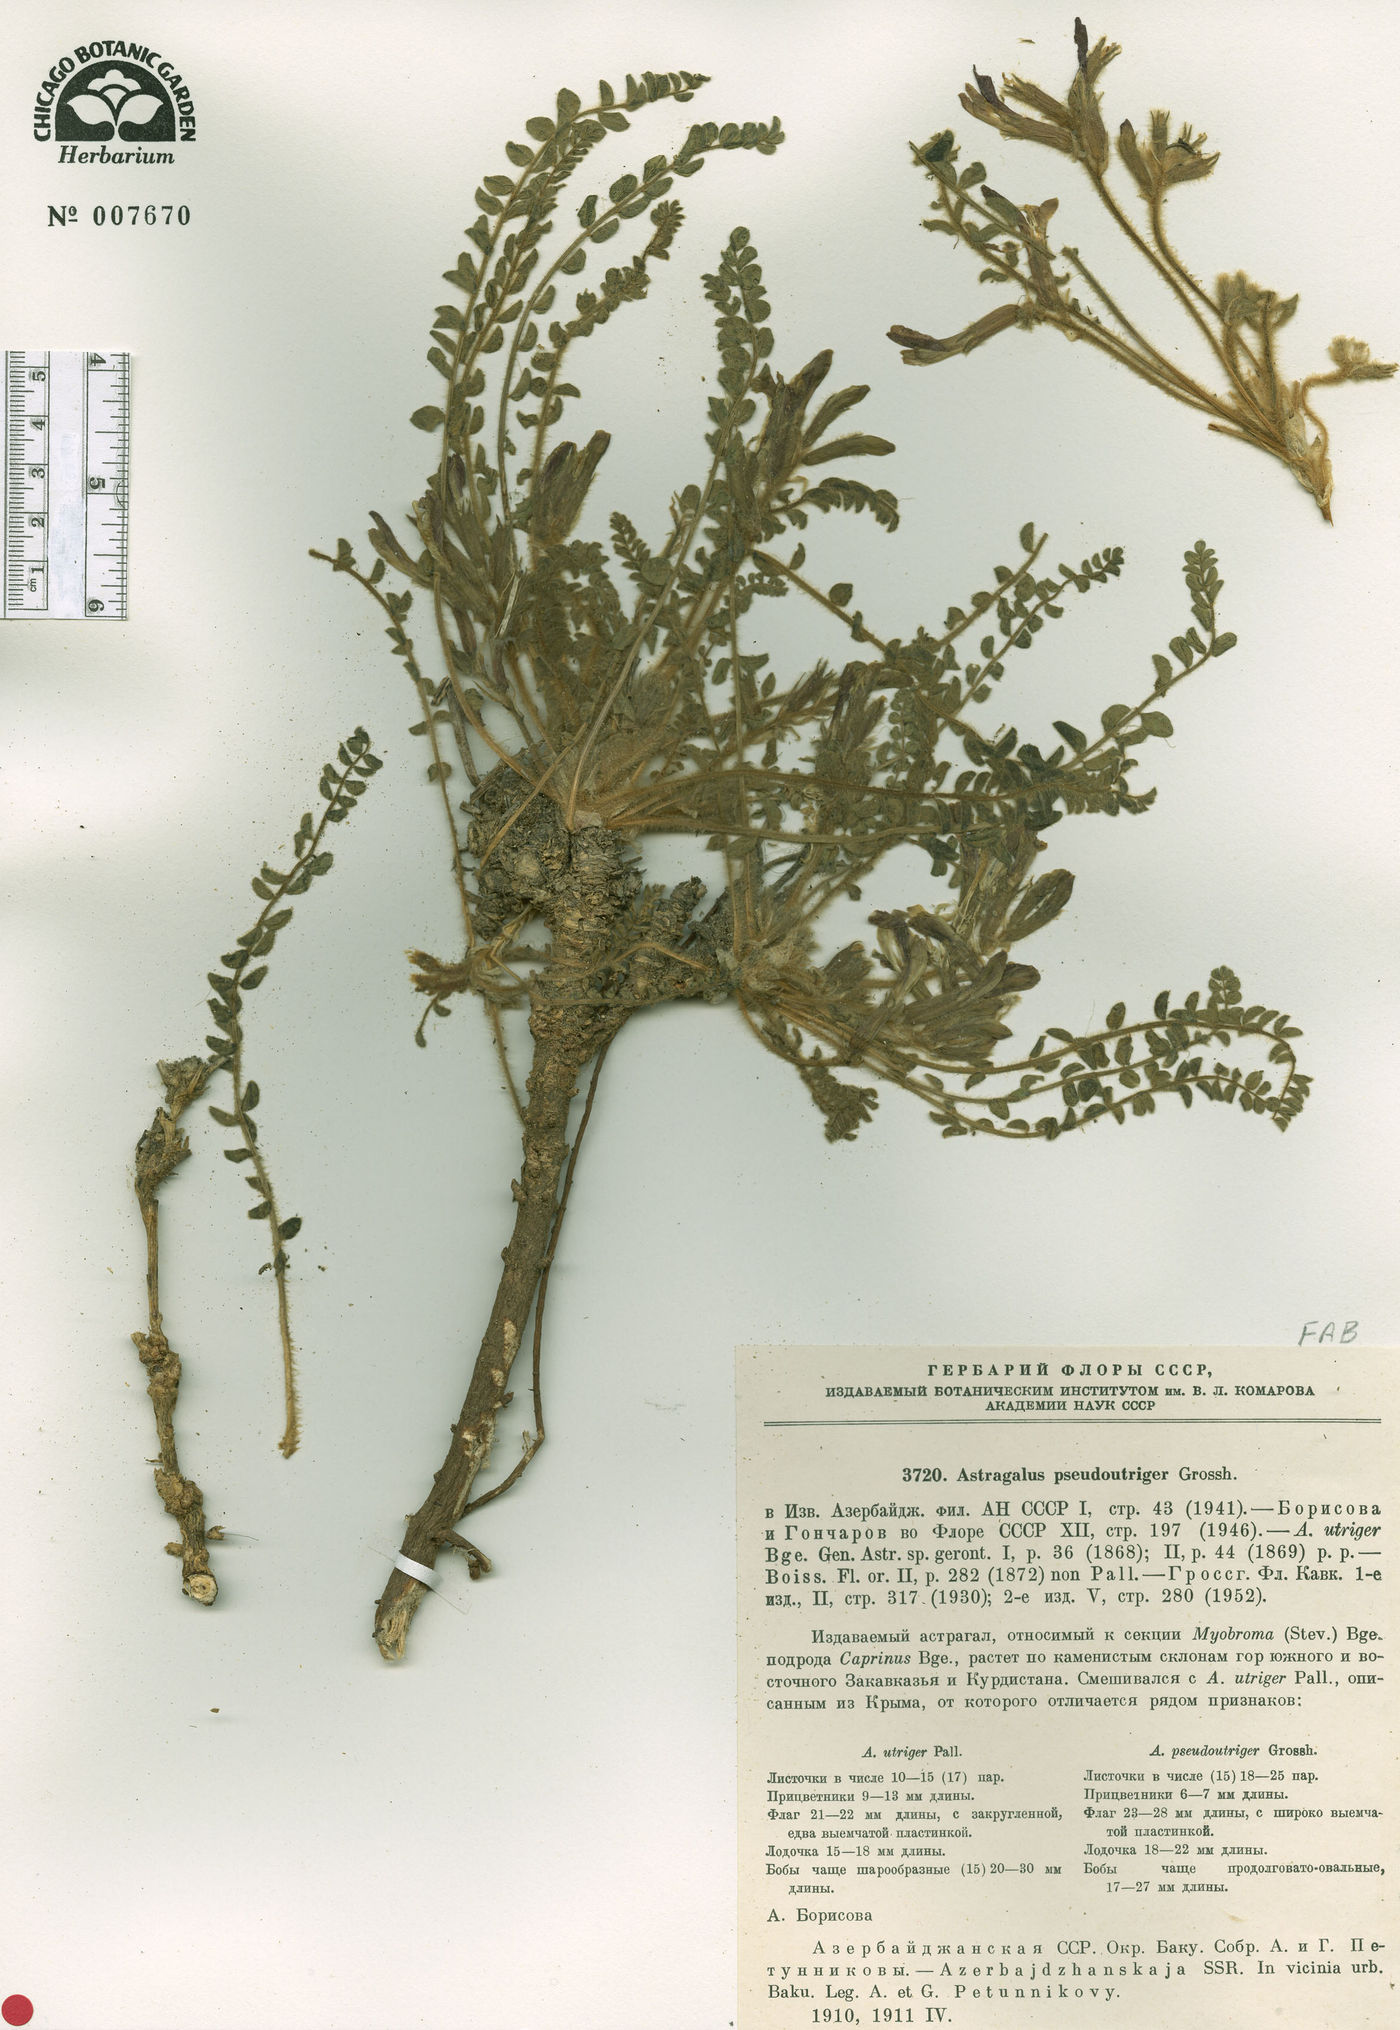 Astragalus pseudoutriger image